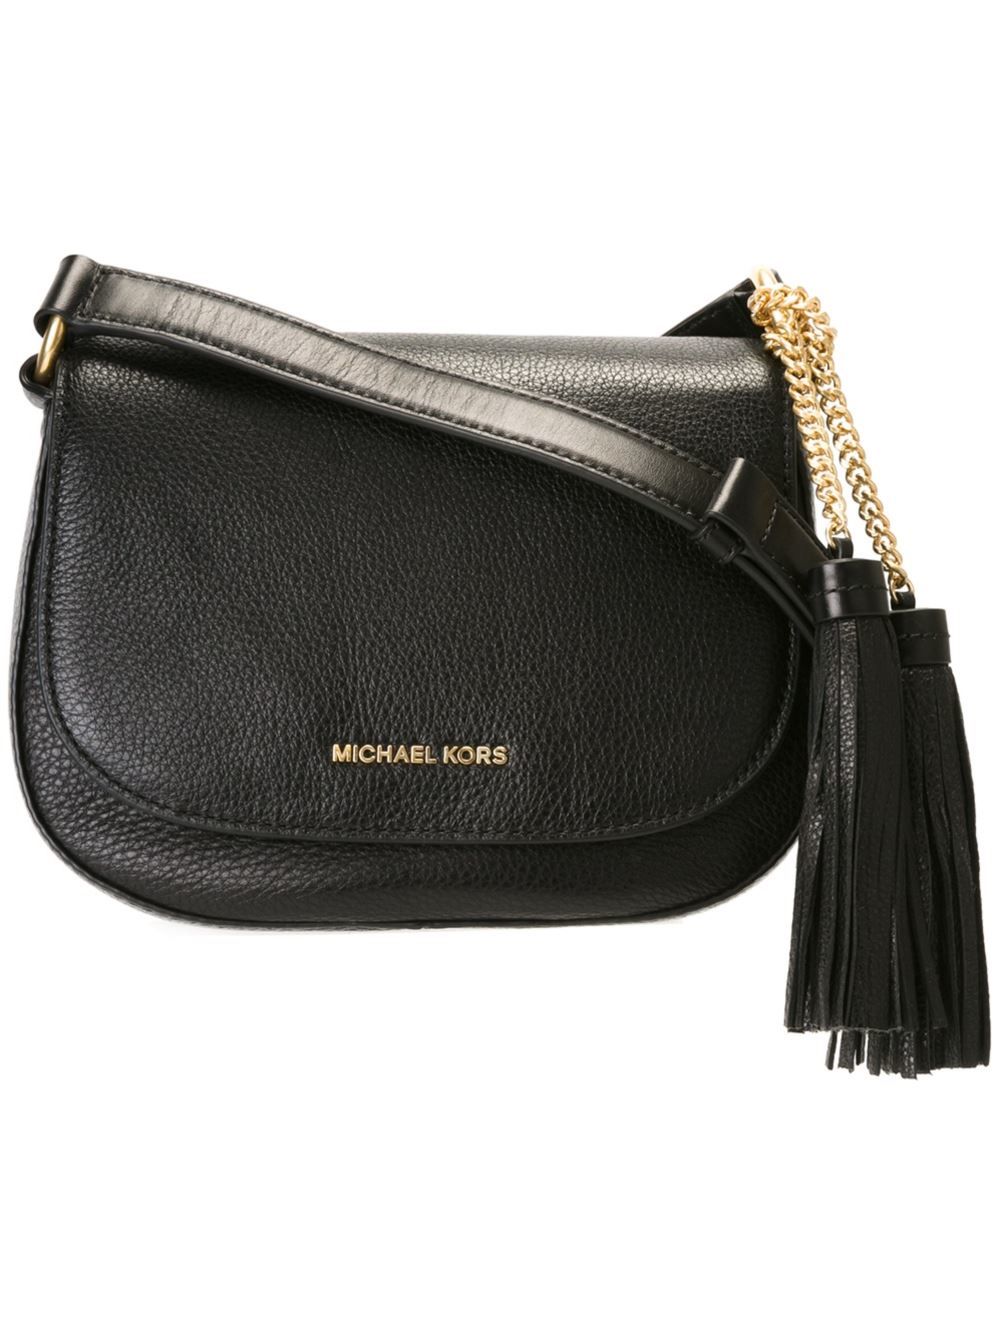 michael michael kors 39 brooklyn 39 saddle crossbody bag in black lyst. Black Bedroom Furniture Sets. Home Design Ideas